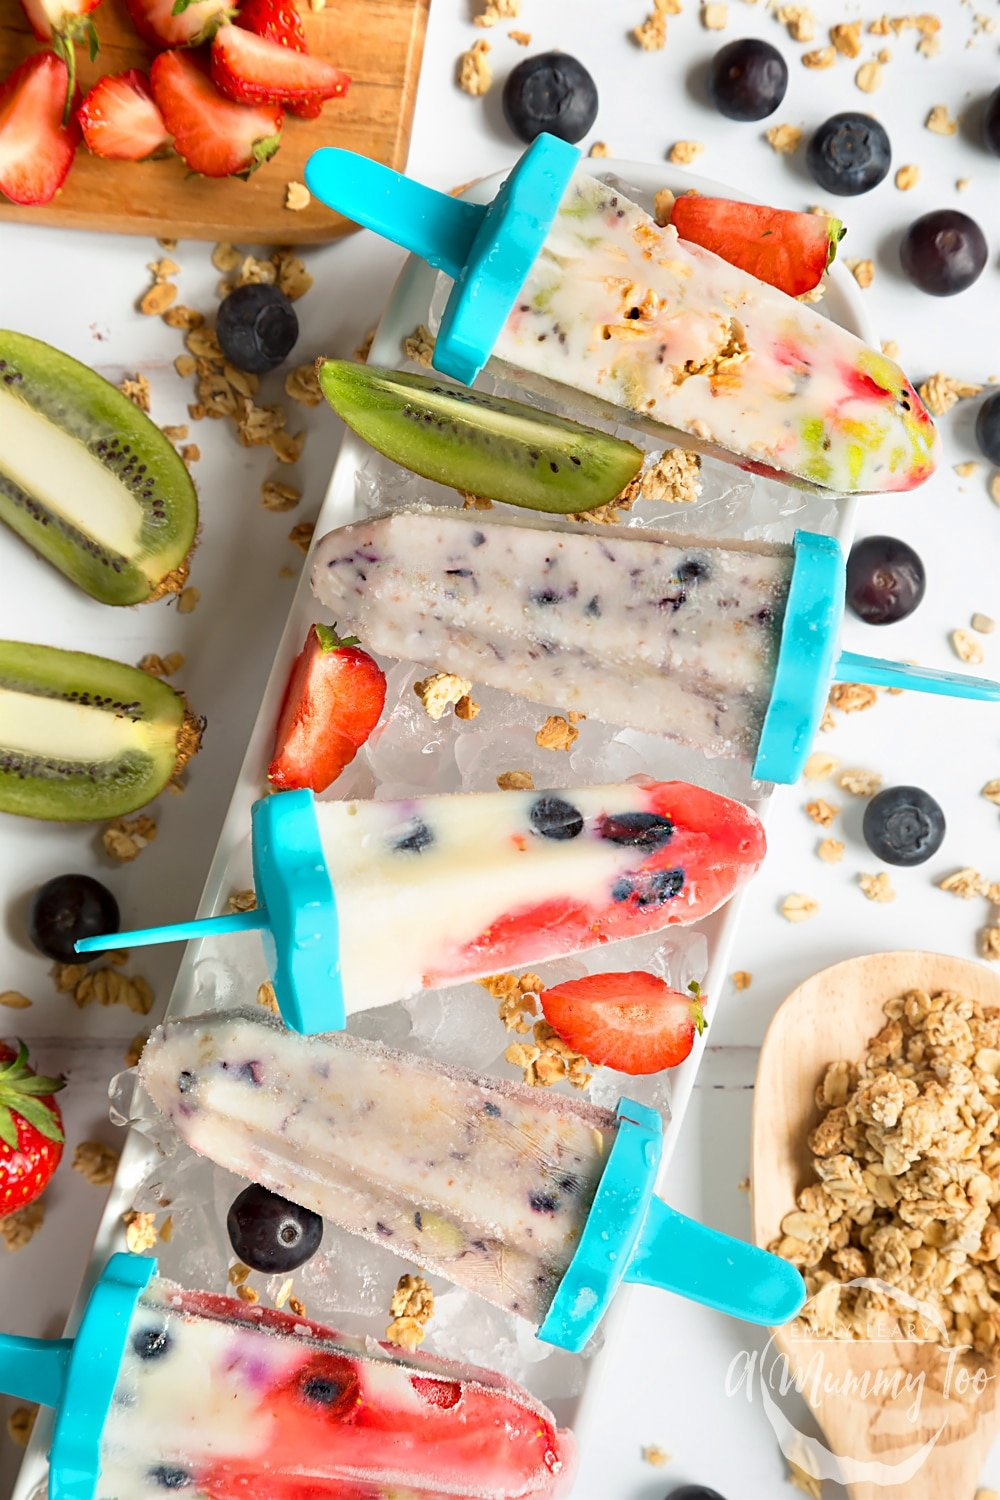 Frozen fruit and yogurt lollies shown surrounded by kiwis, strawberries, blueberries and granola. Perfect for a refreshing treat this Summer!